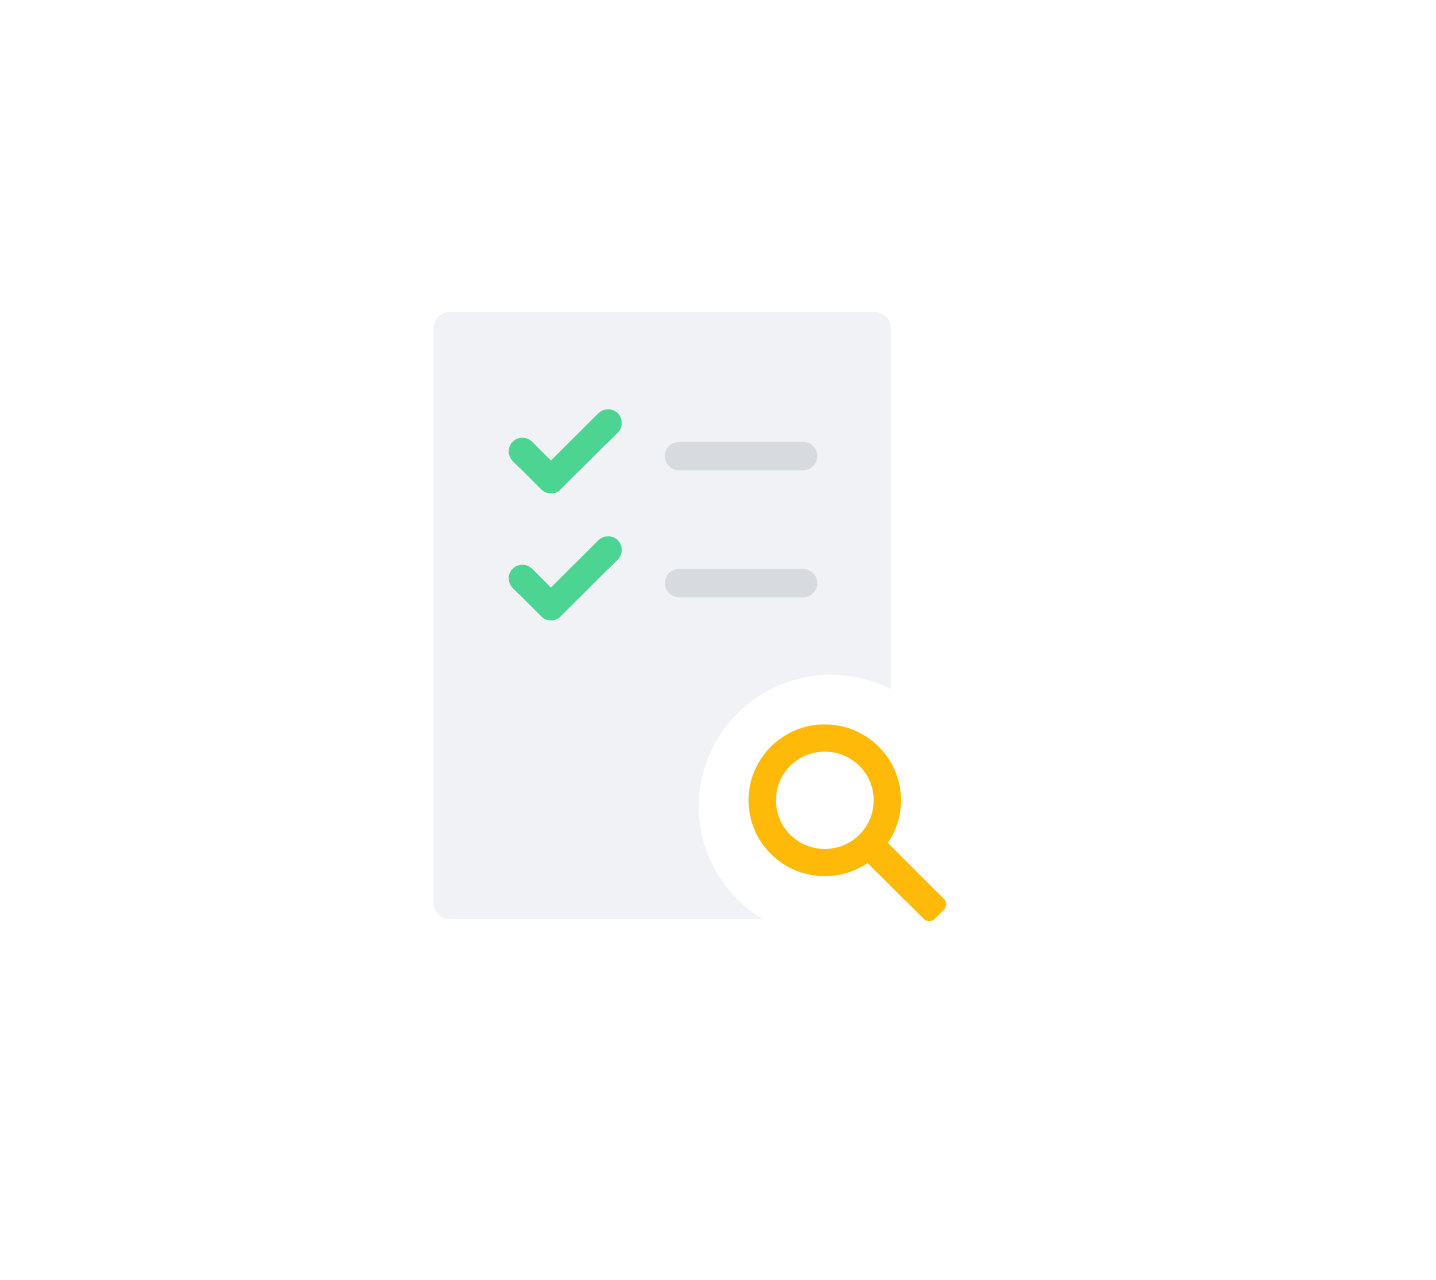 Offer managers with the visibility and tools to maximize inspection operations and streamline workflows